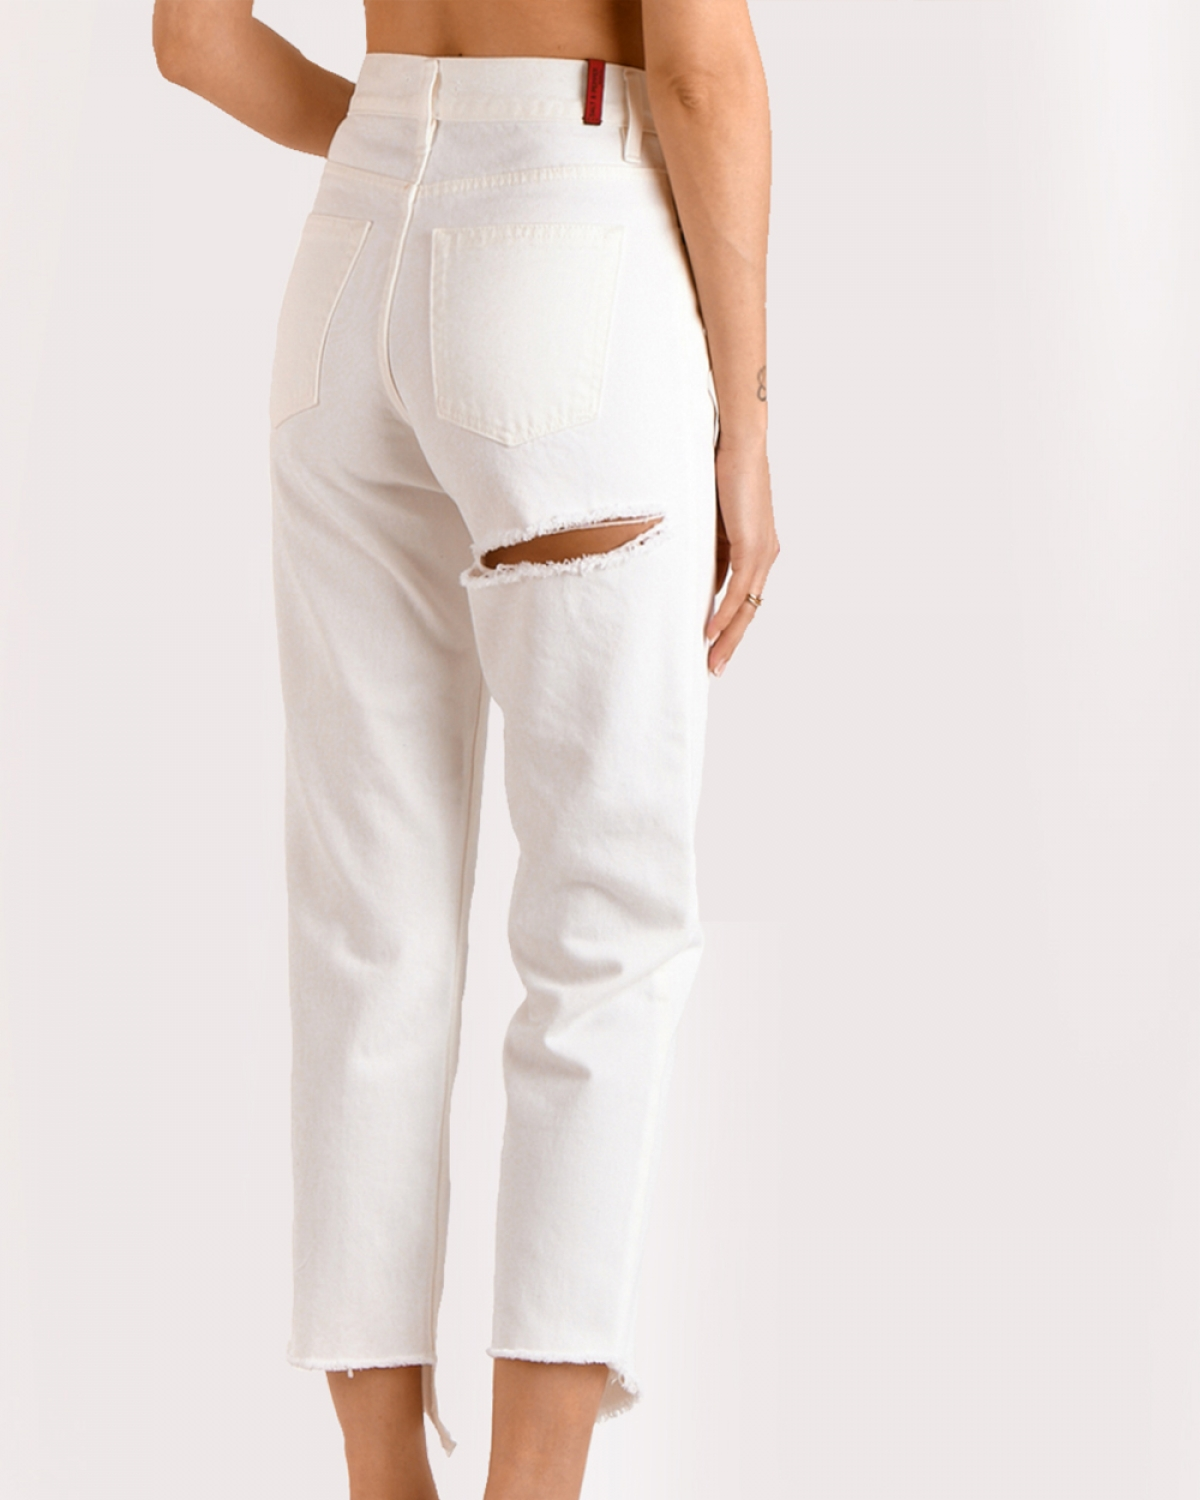 Barbara Off-White Cropped Jeans